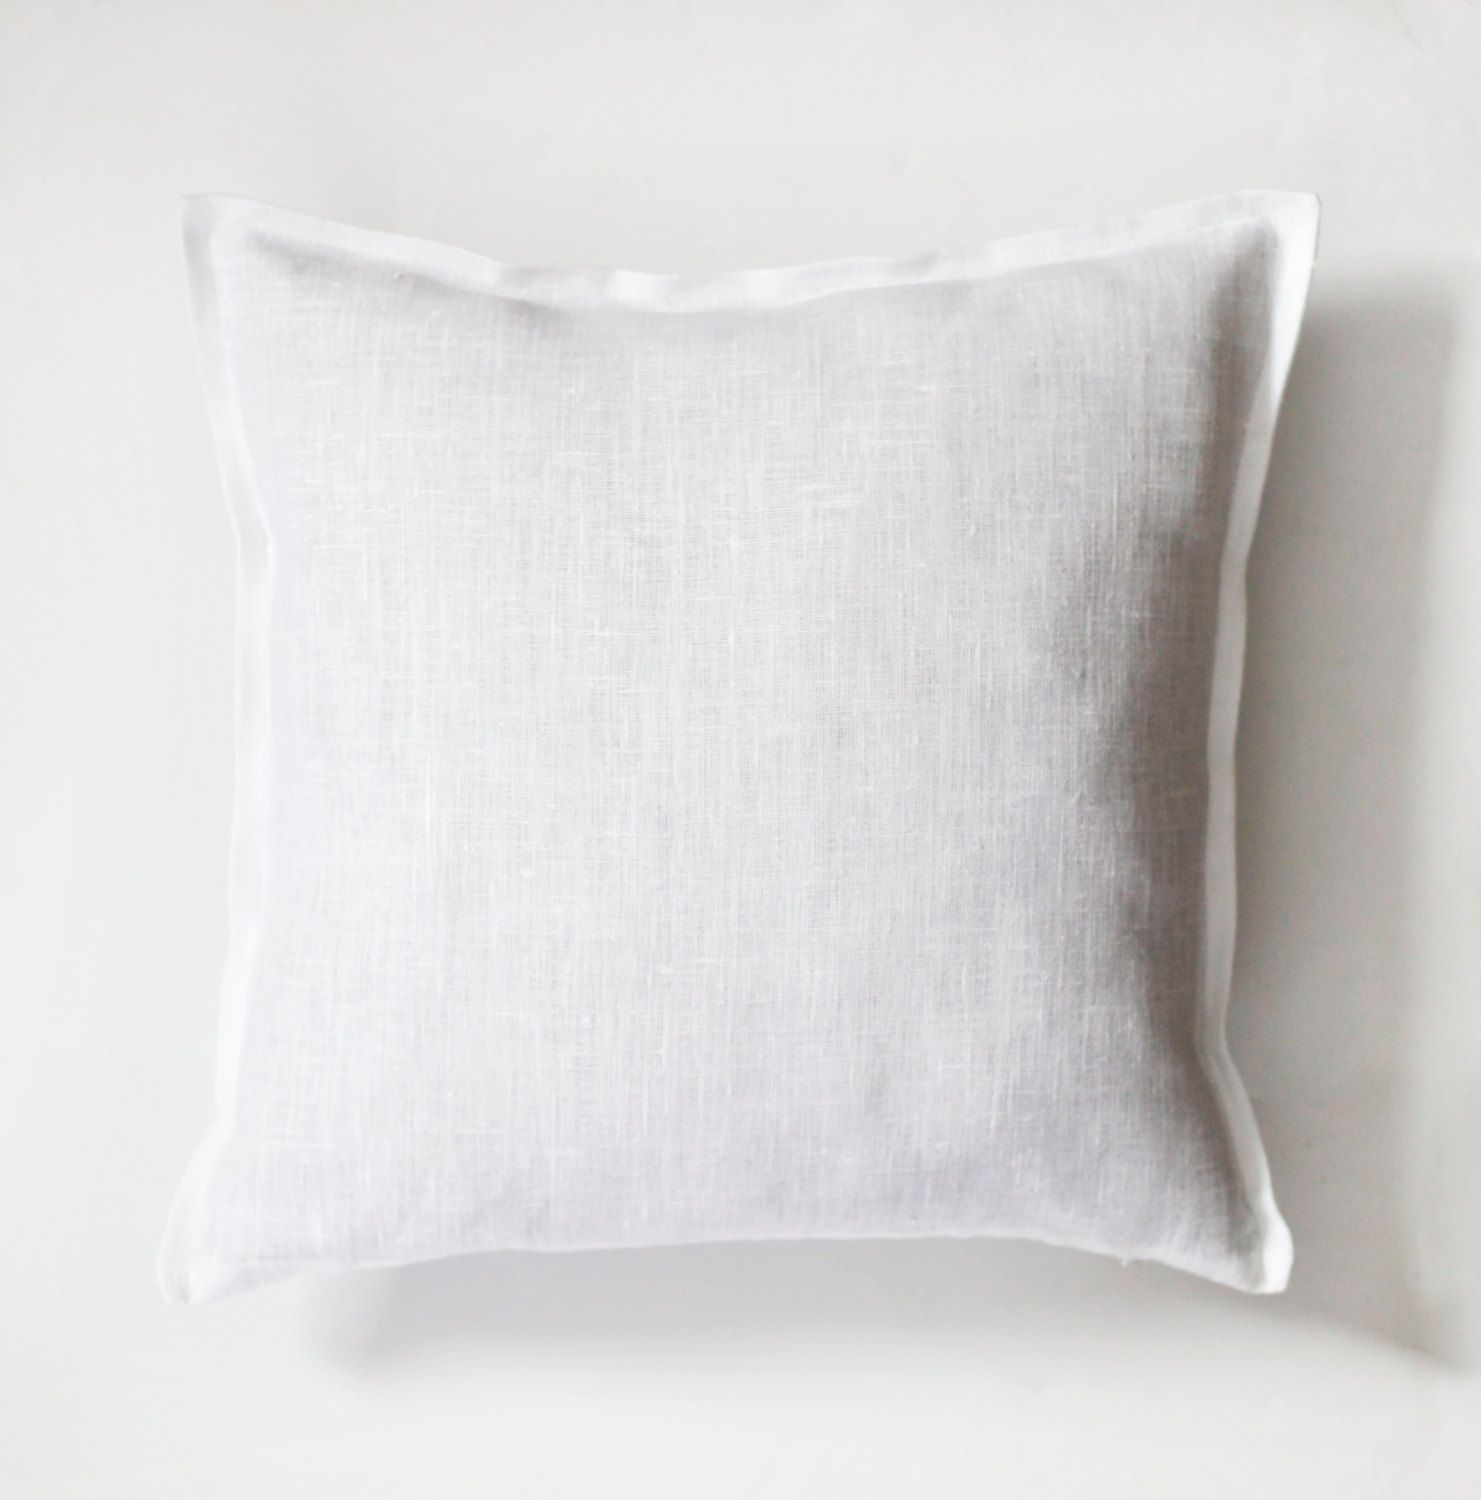 Good White Linen Shams   Set Of 2   Decorative Pillow Covers 0049   Pinned By  Pin4etsy